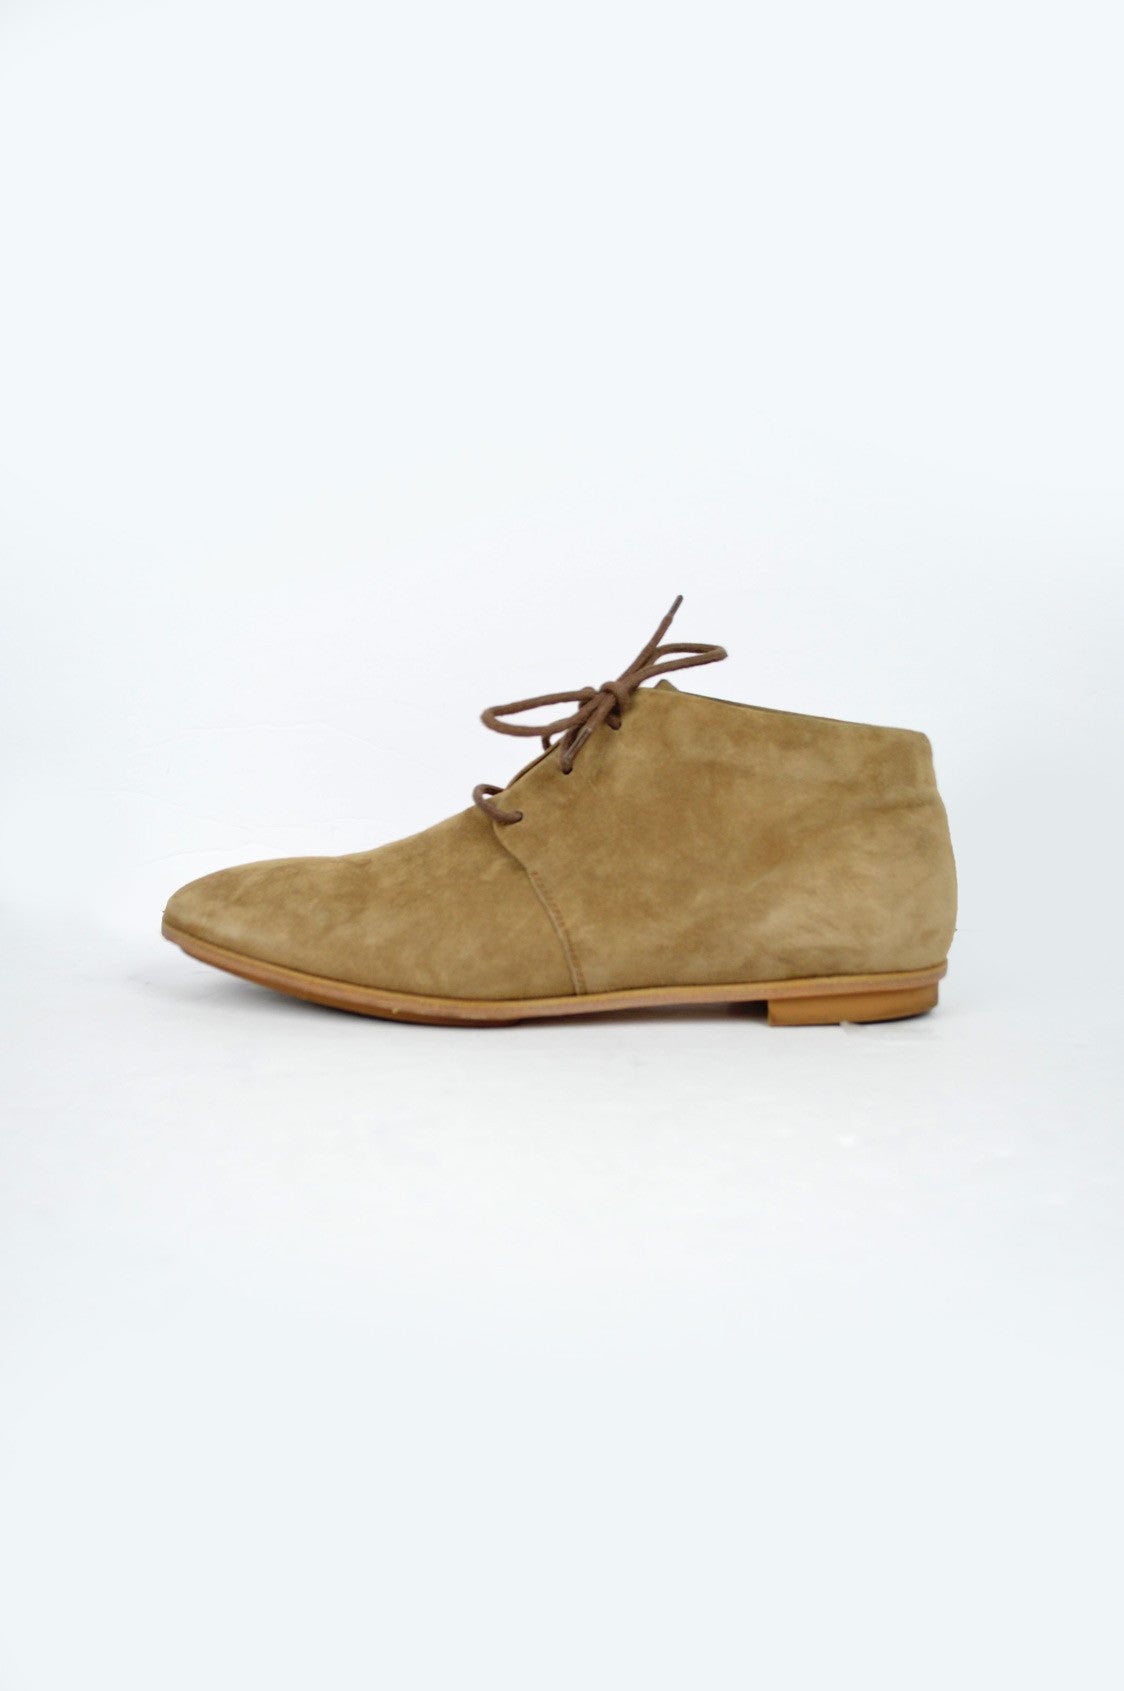 Camel Suede Chukka Shoes